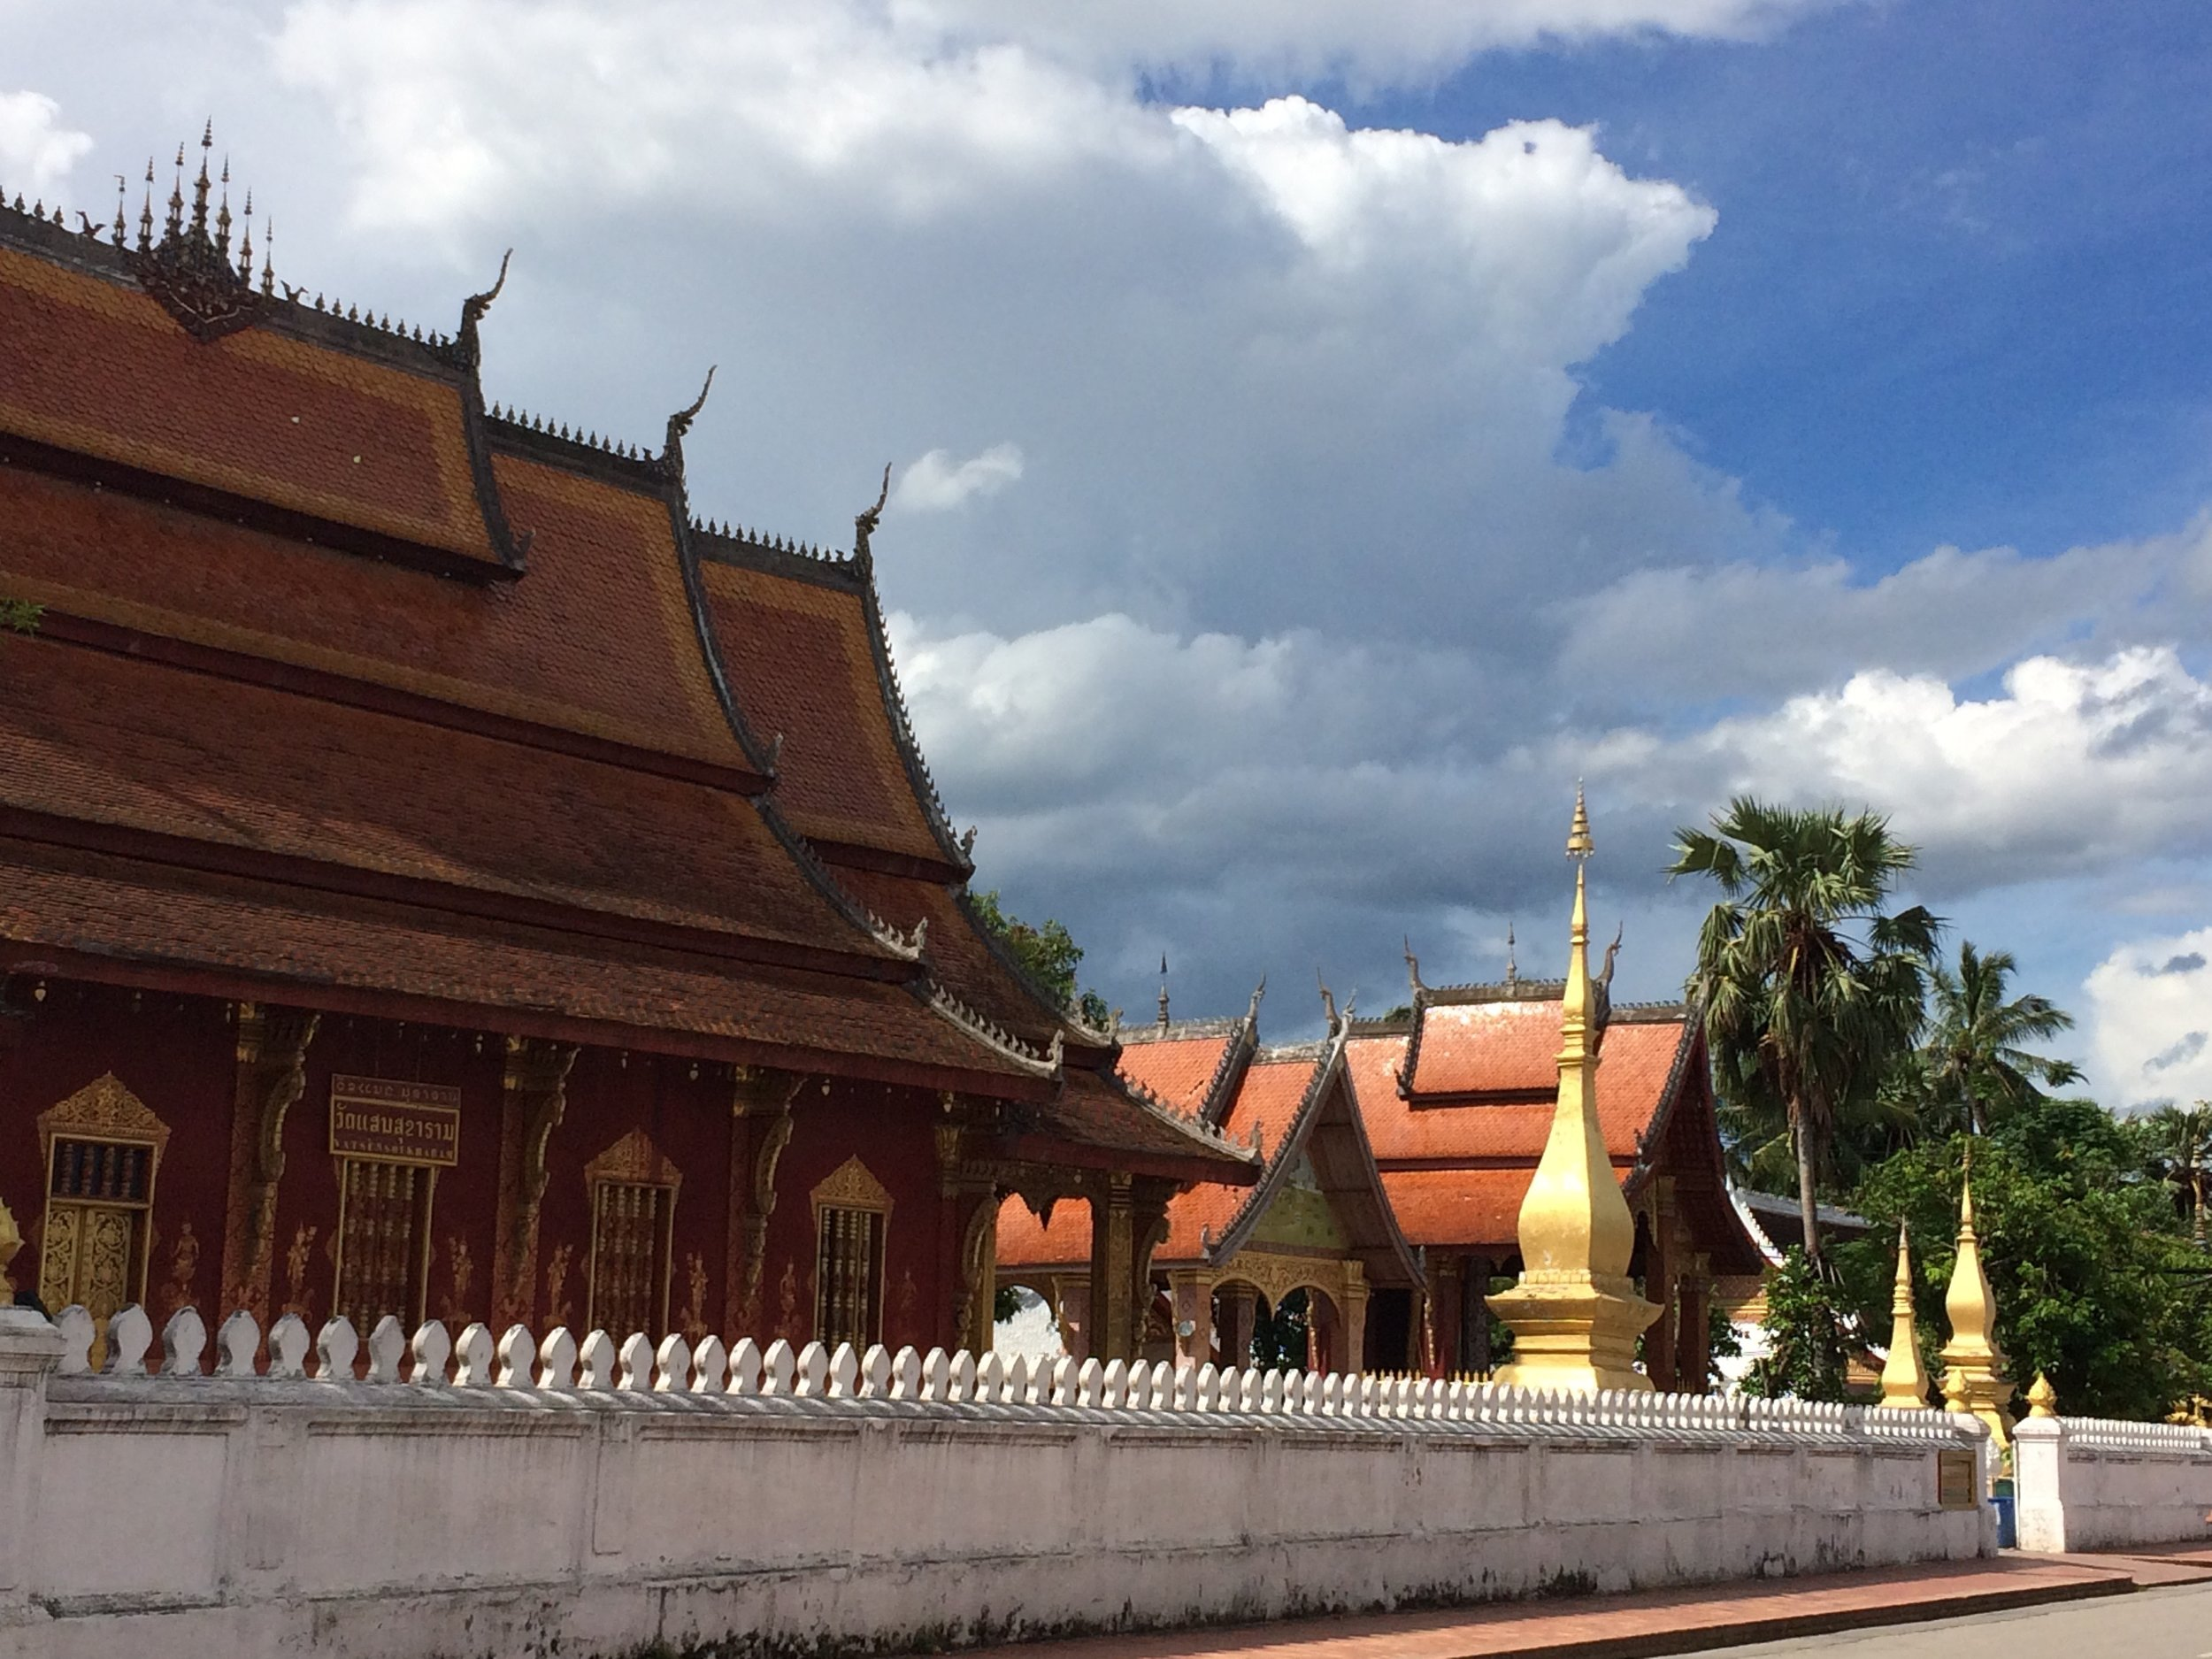 Our walks in Luang Prabang took us past one of these temple grounds every few minutes.